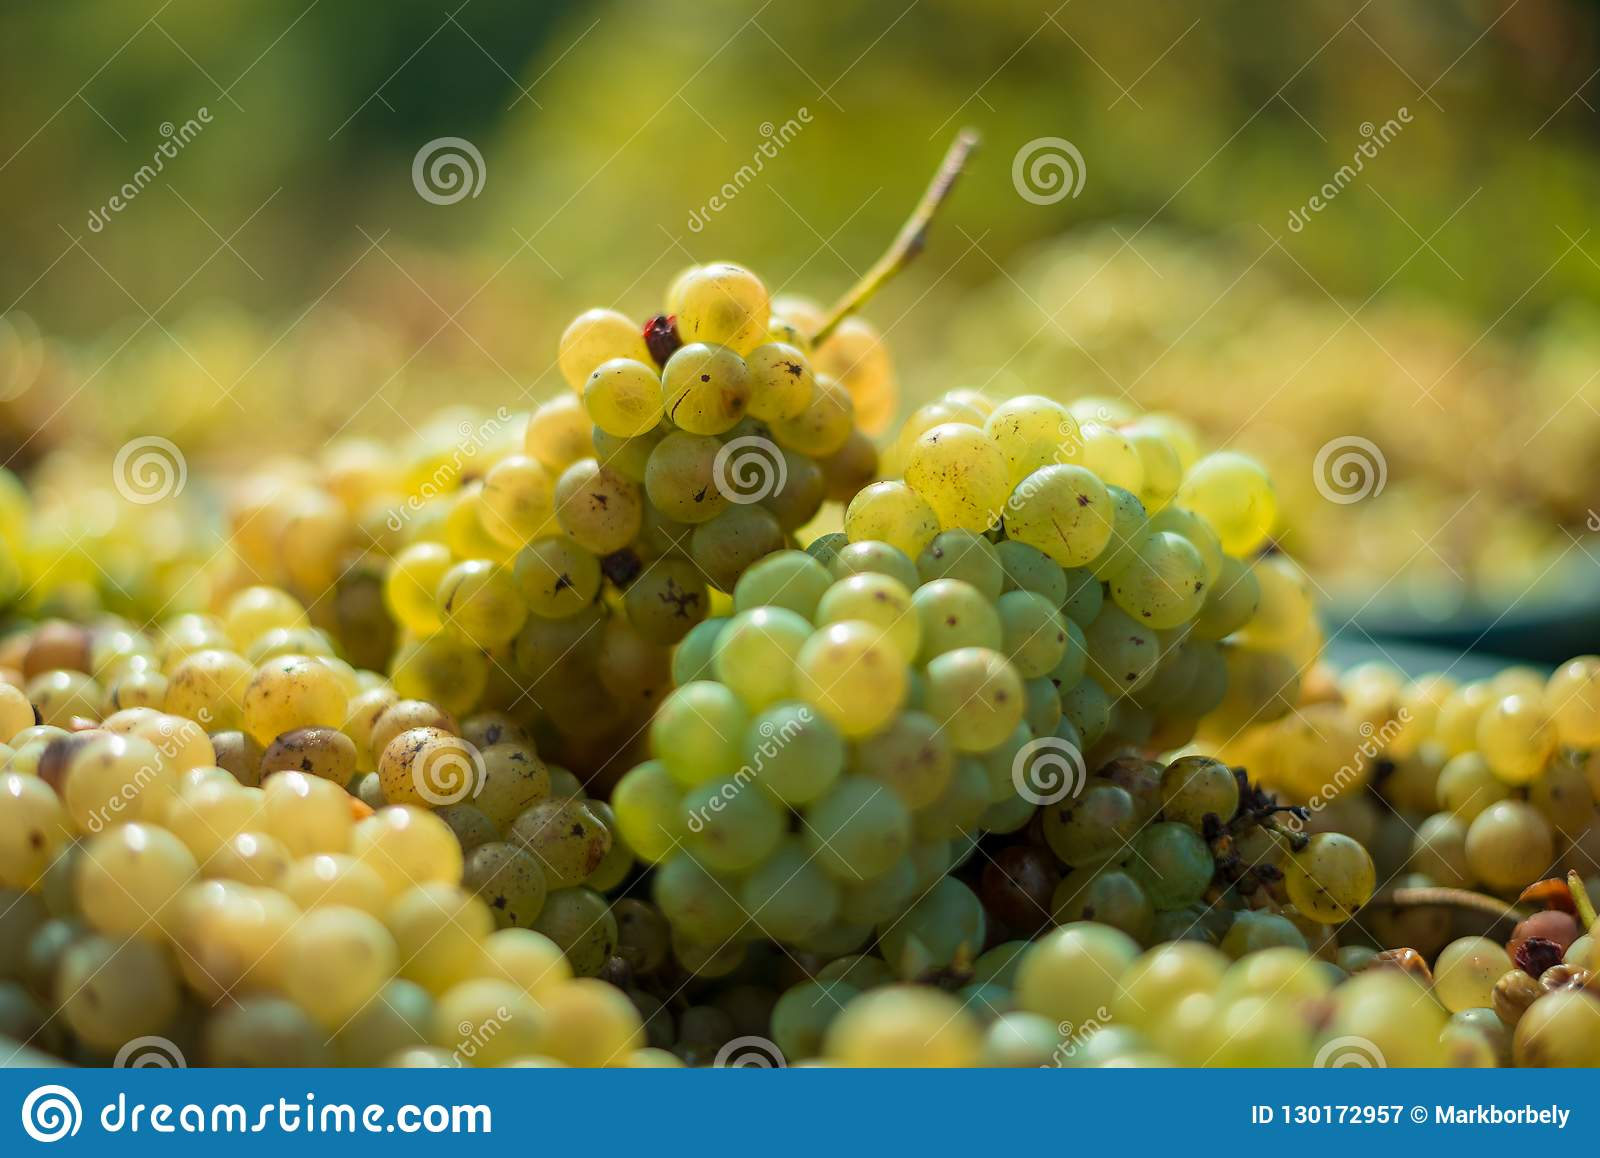 White vine grapes. Detailed view of a grape vines in a vineyard in autumn.